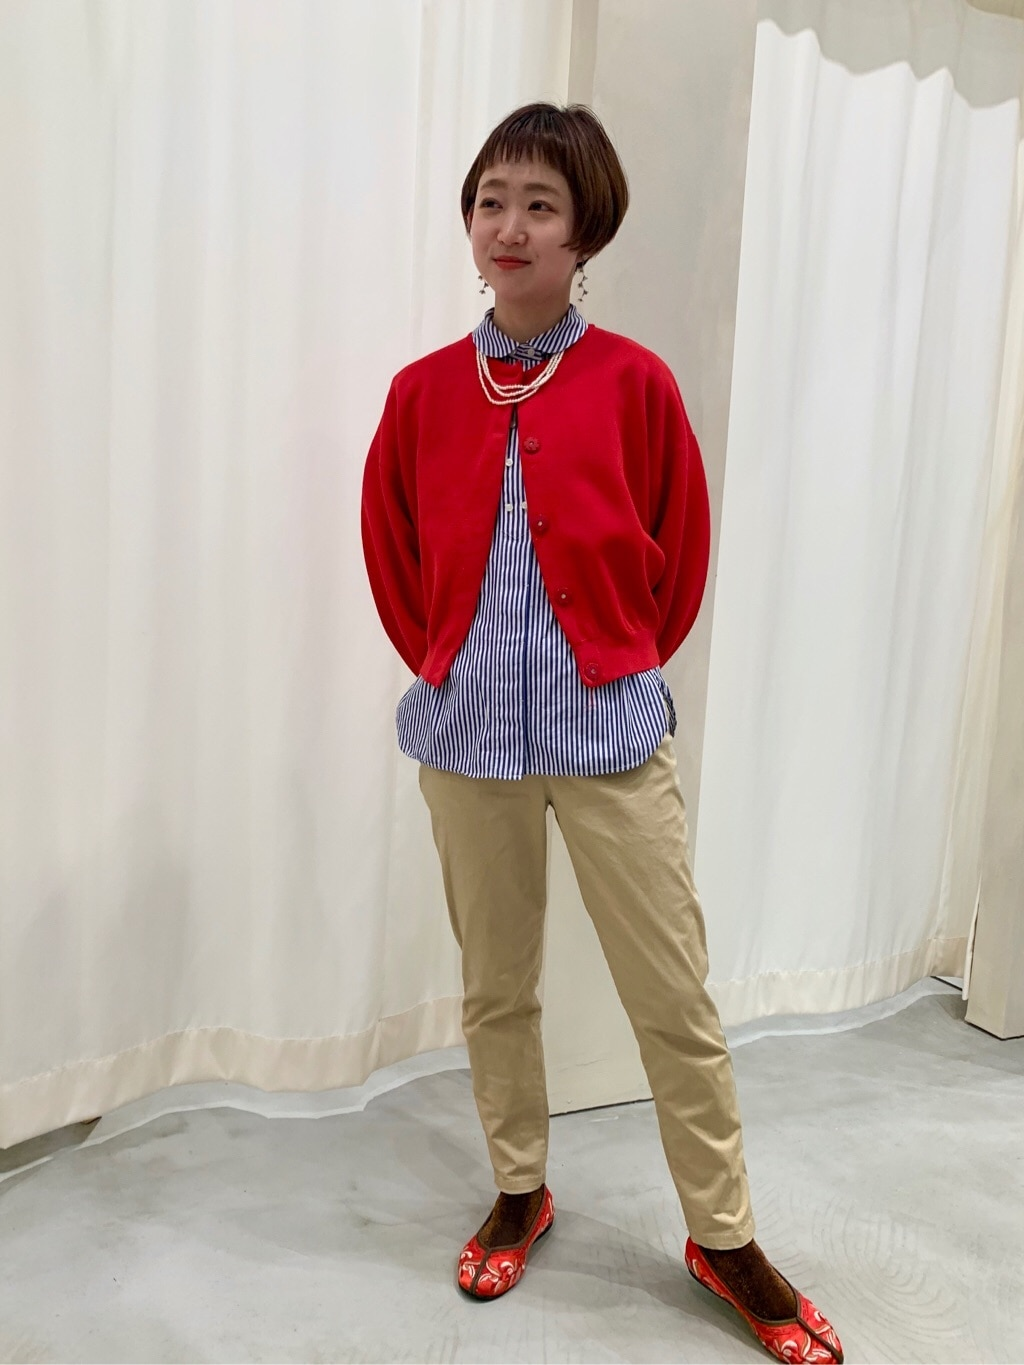 Dot and Stripes CHILD WOMAN 新宿ミロード 身長:150cm 2020.03.24